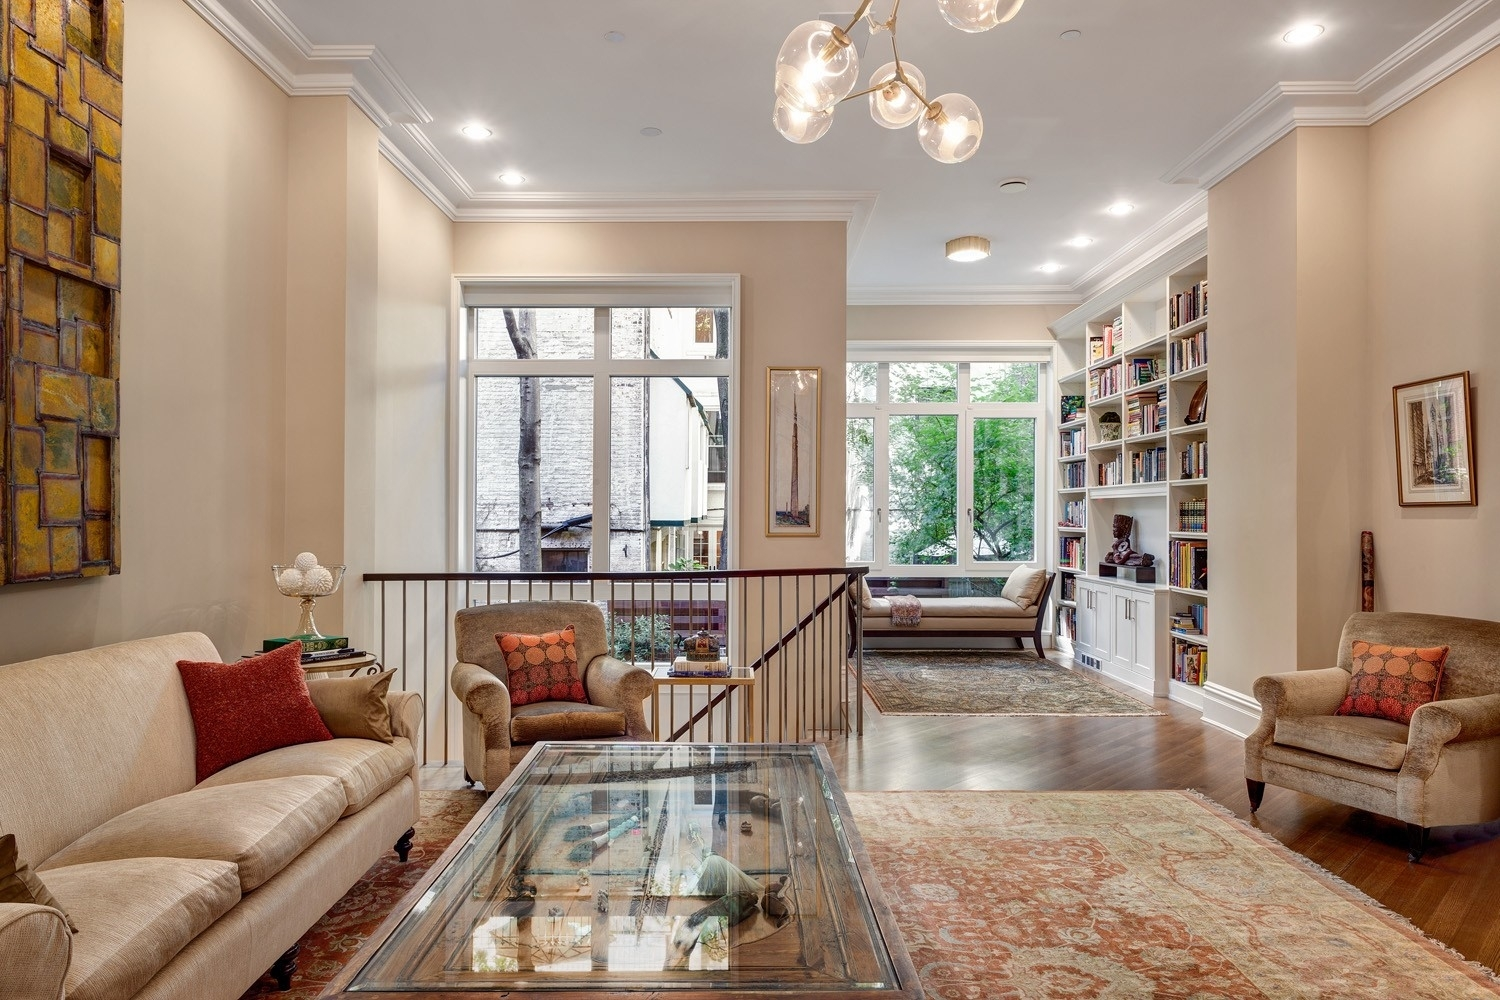 4. Single Family Townhouse for Sale at Upper West Side, New York, NY 10024